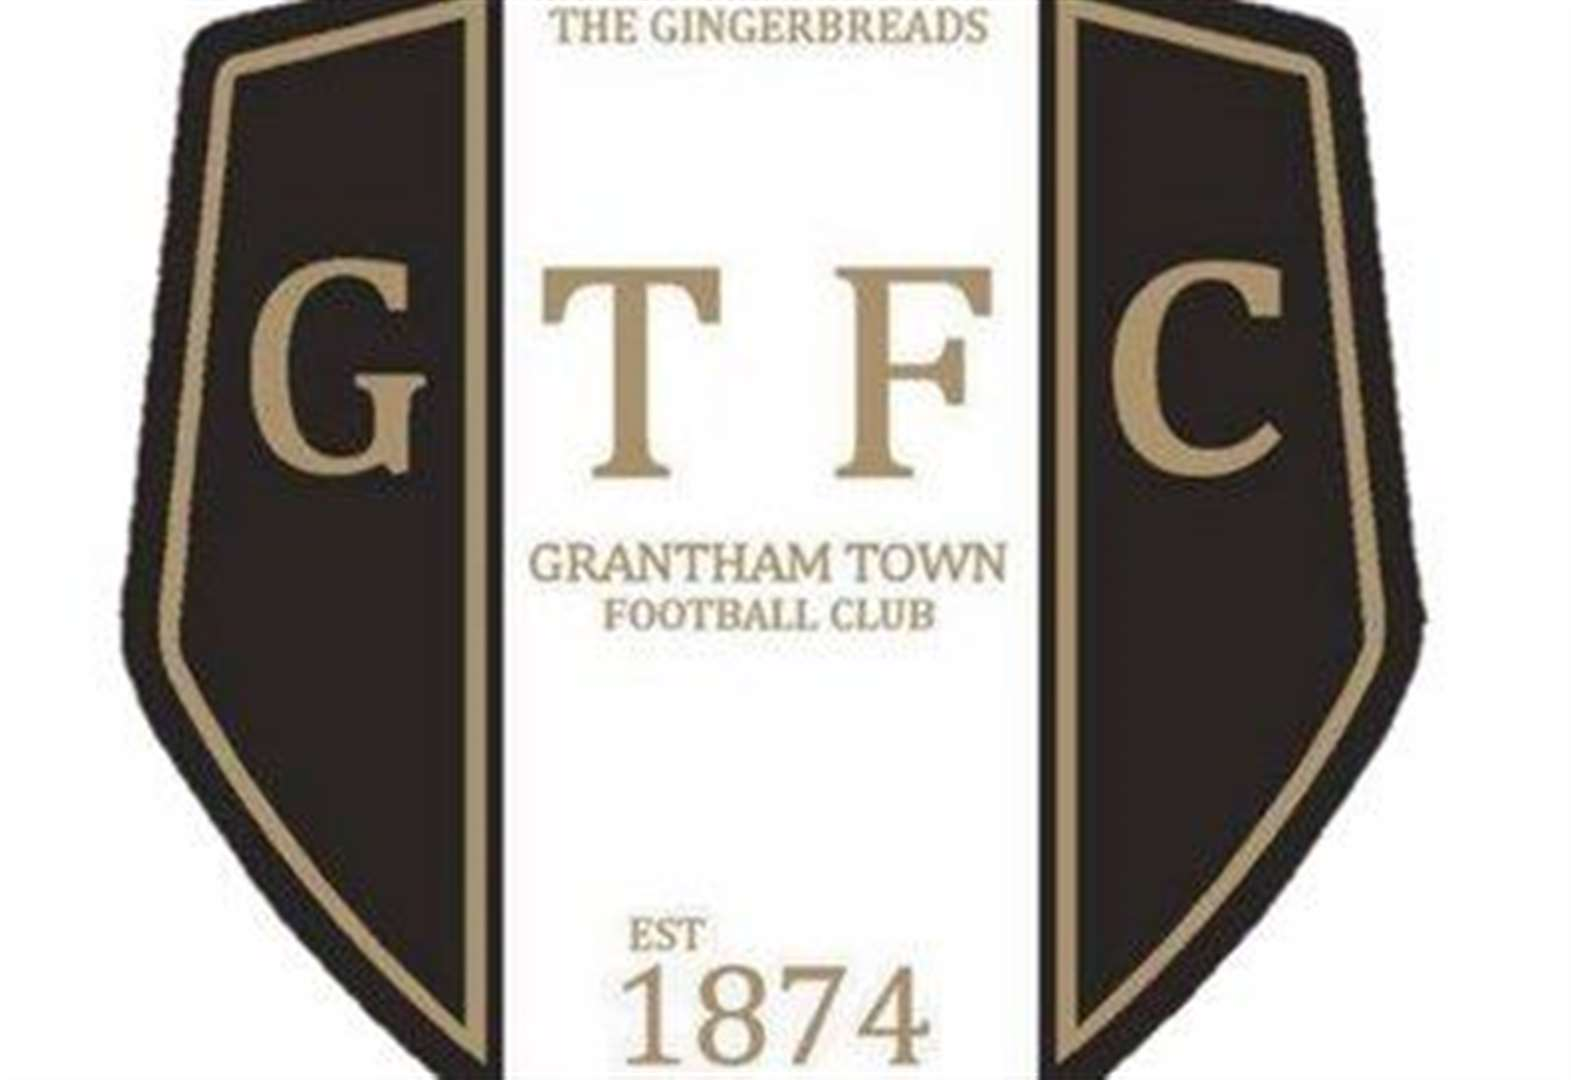 Little festive cheer for the Gingerbreads